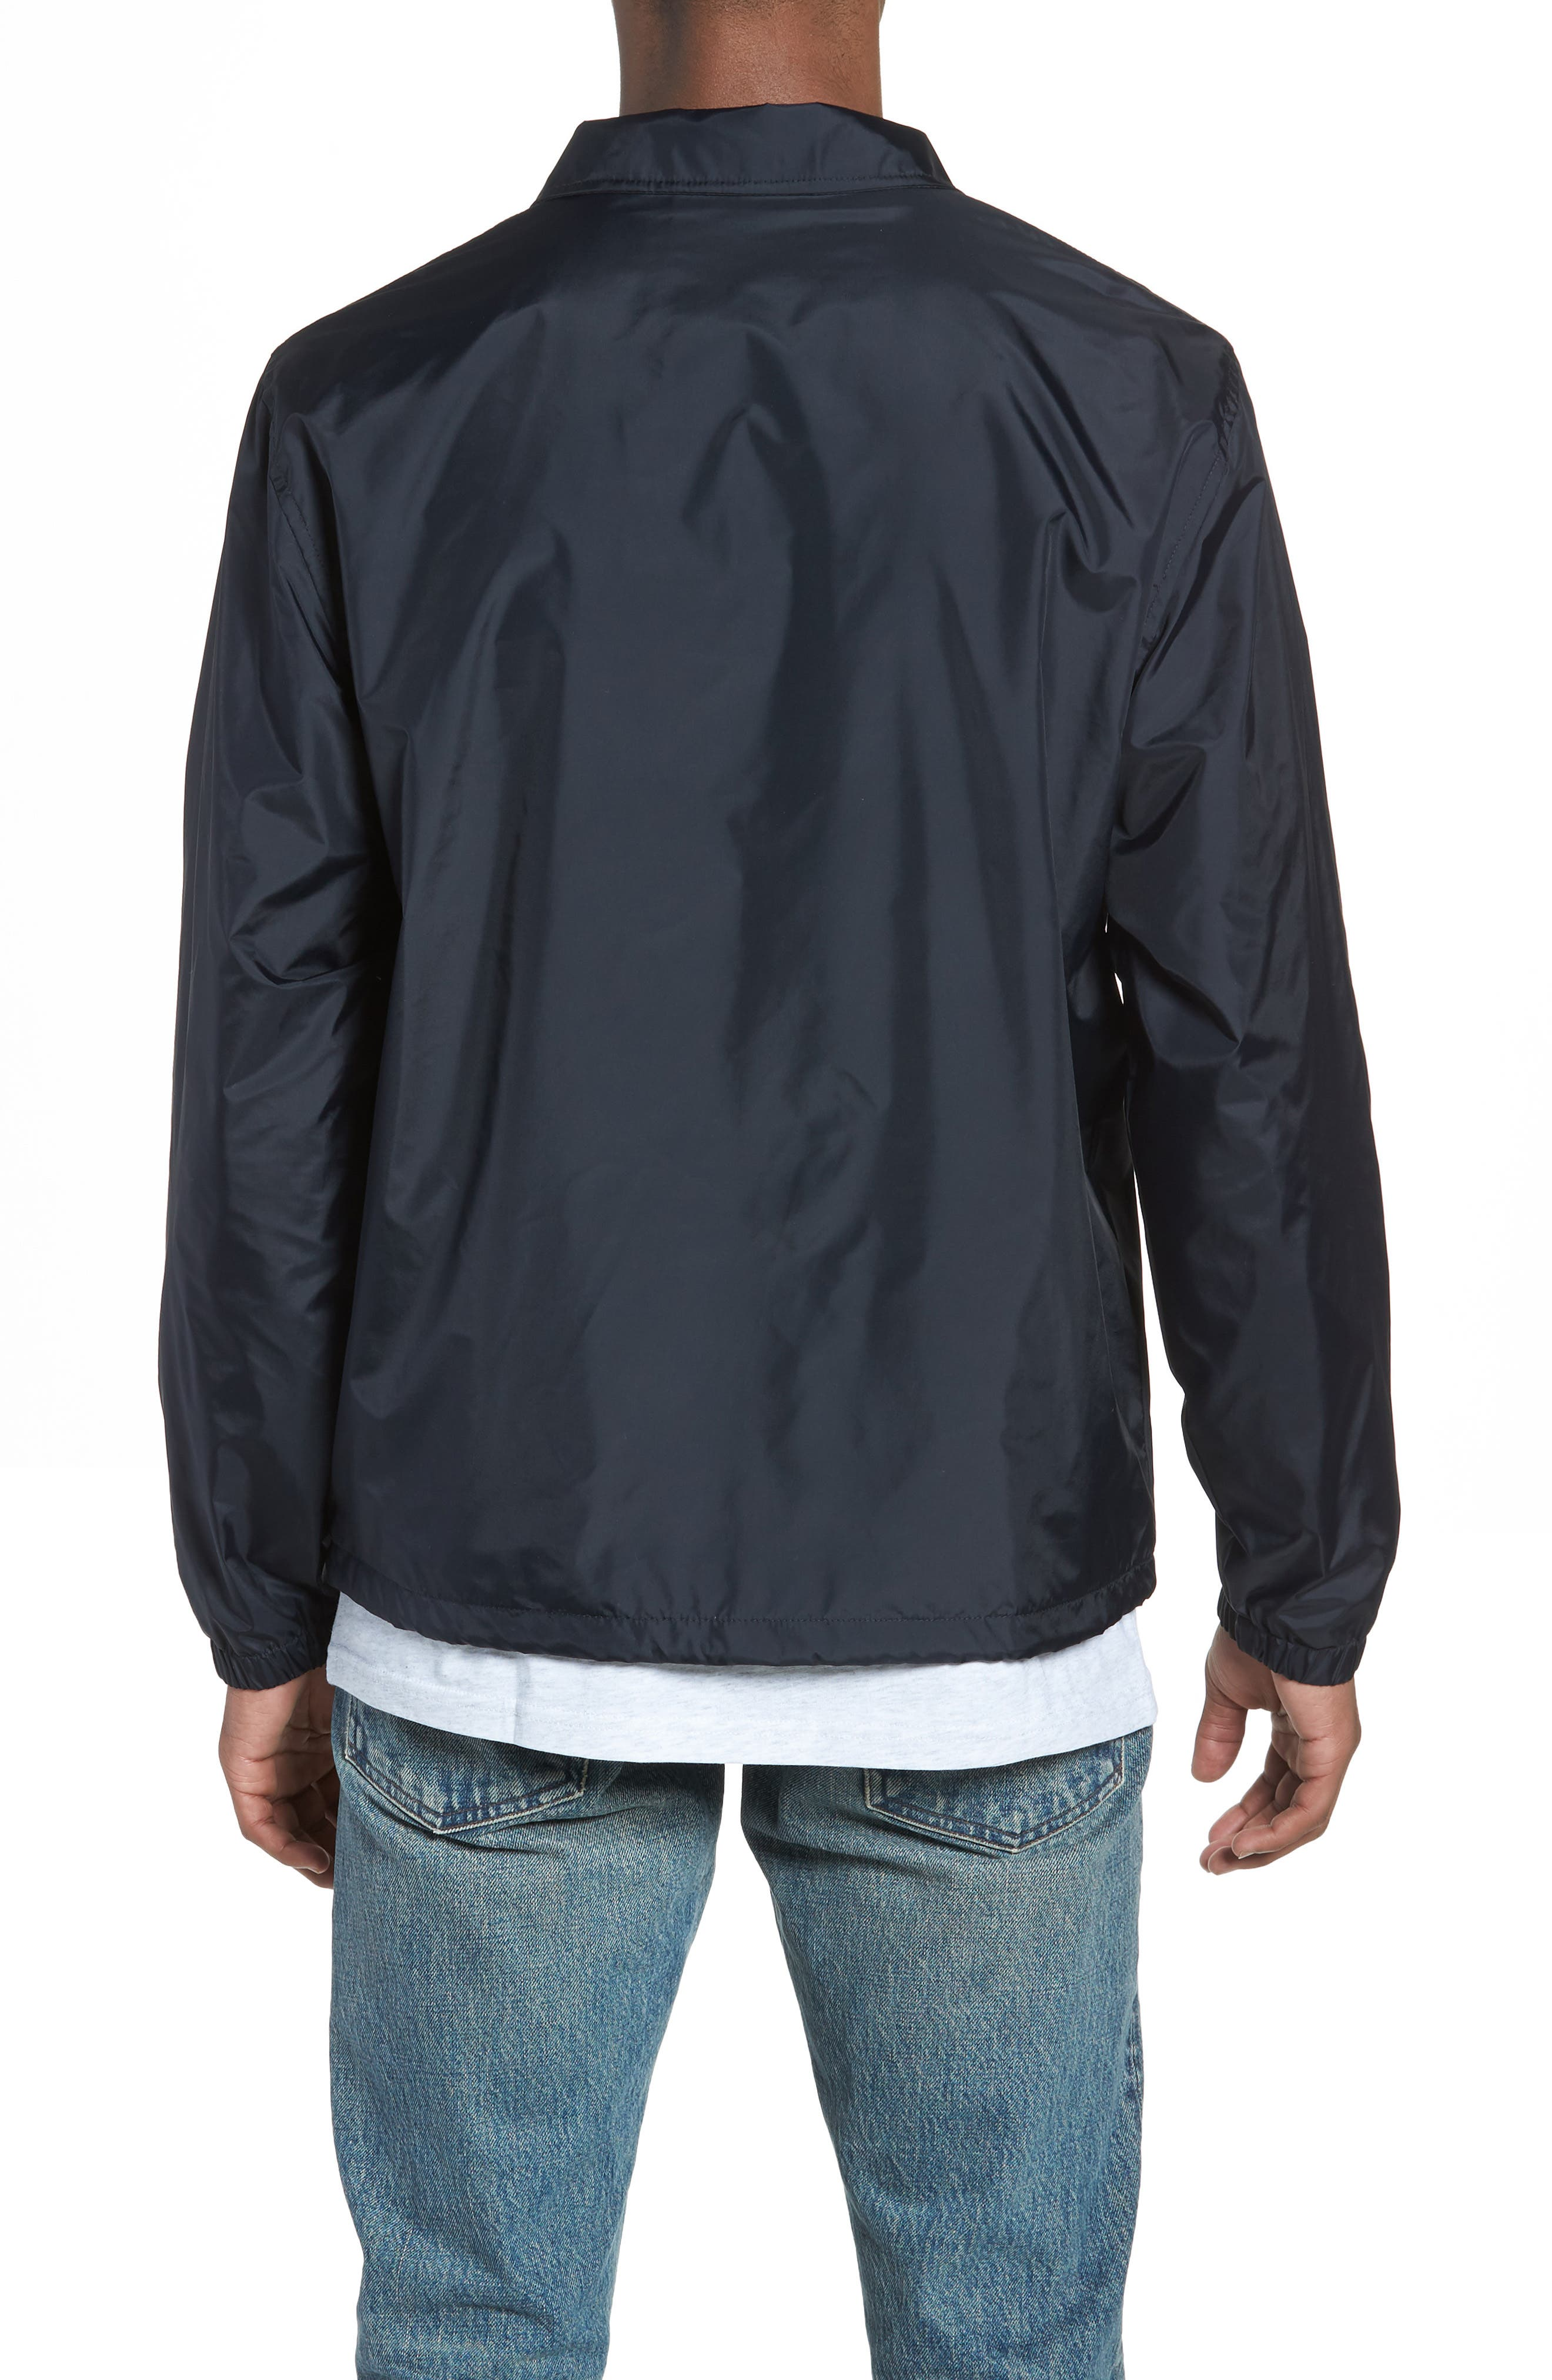 Sport Coach's Jacket,                             Alternate thumbnail 2, color,